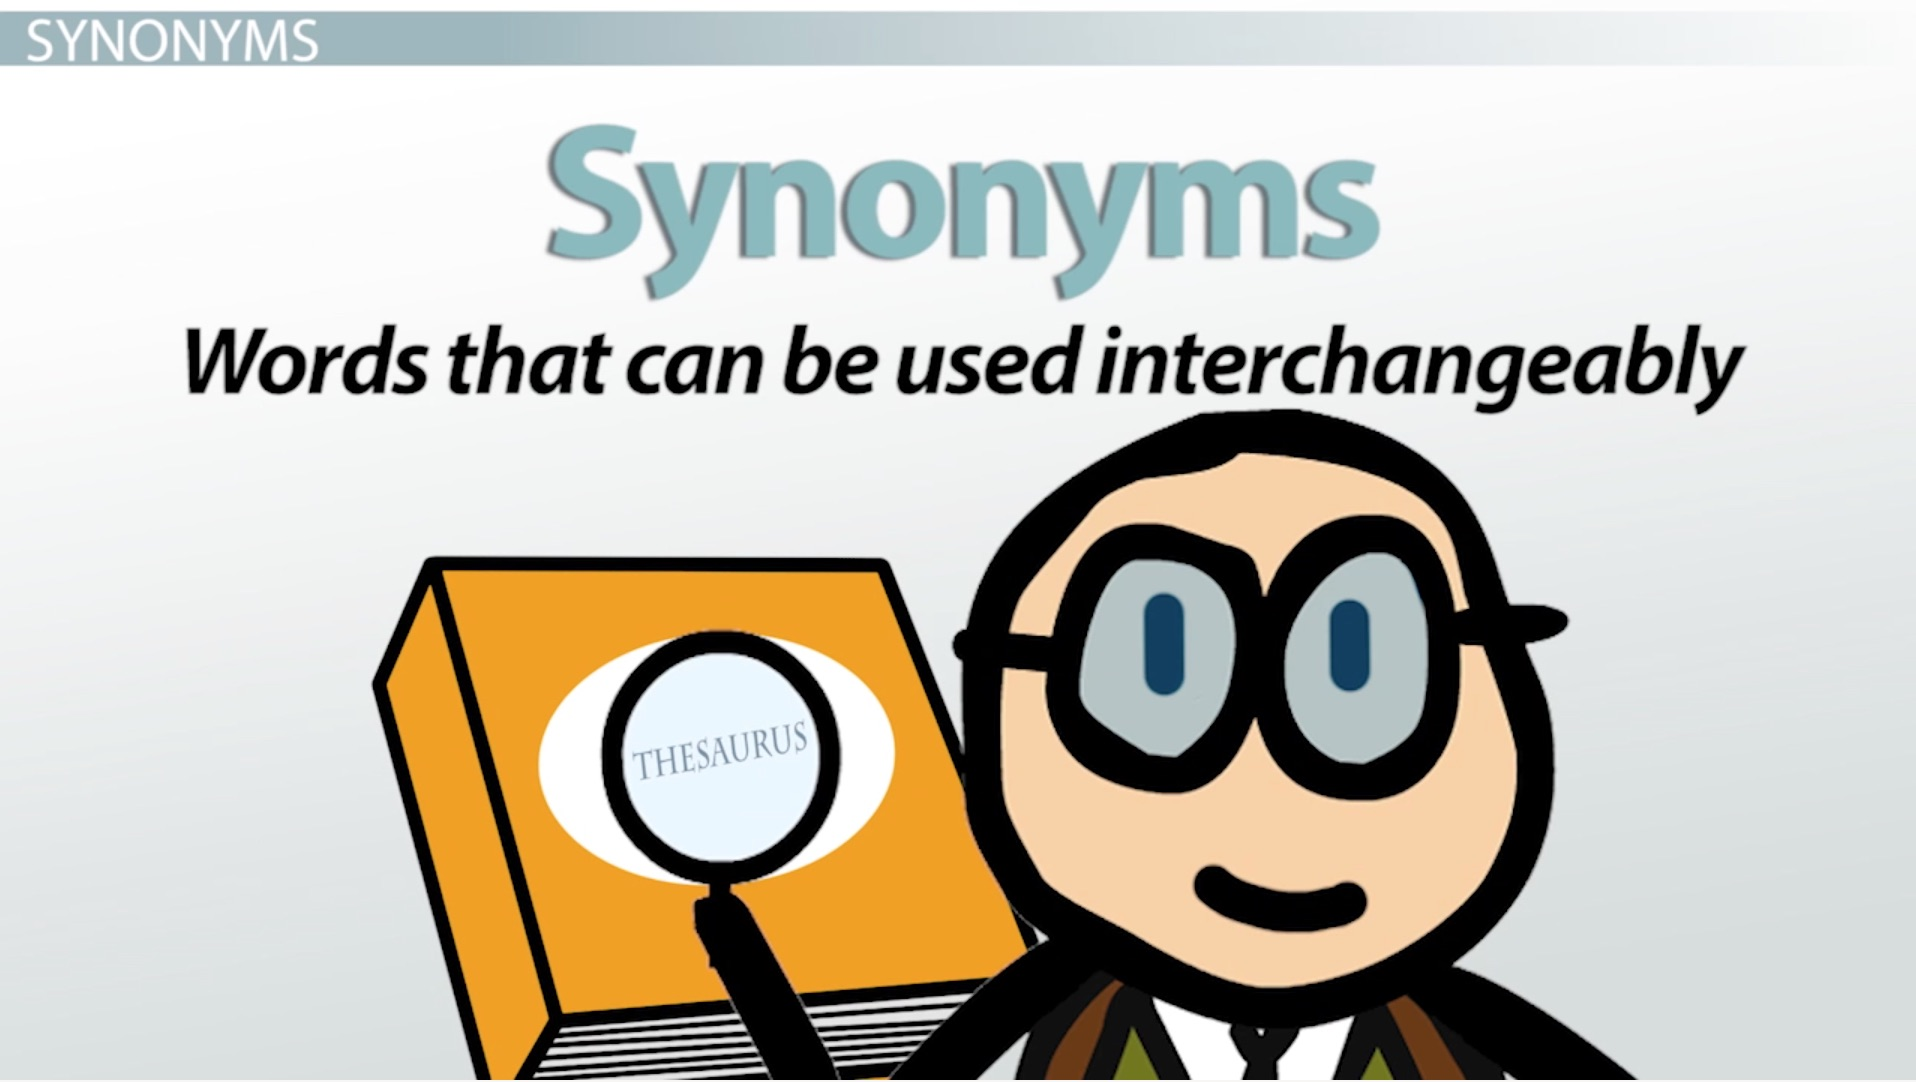 What Are Synonyms & Antonyms? Definition & Examples